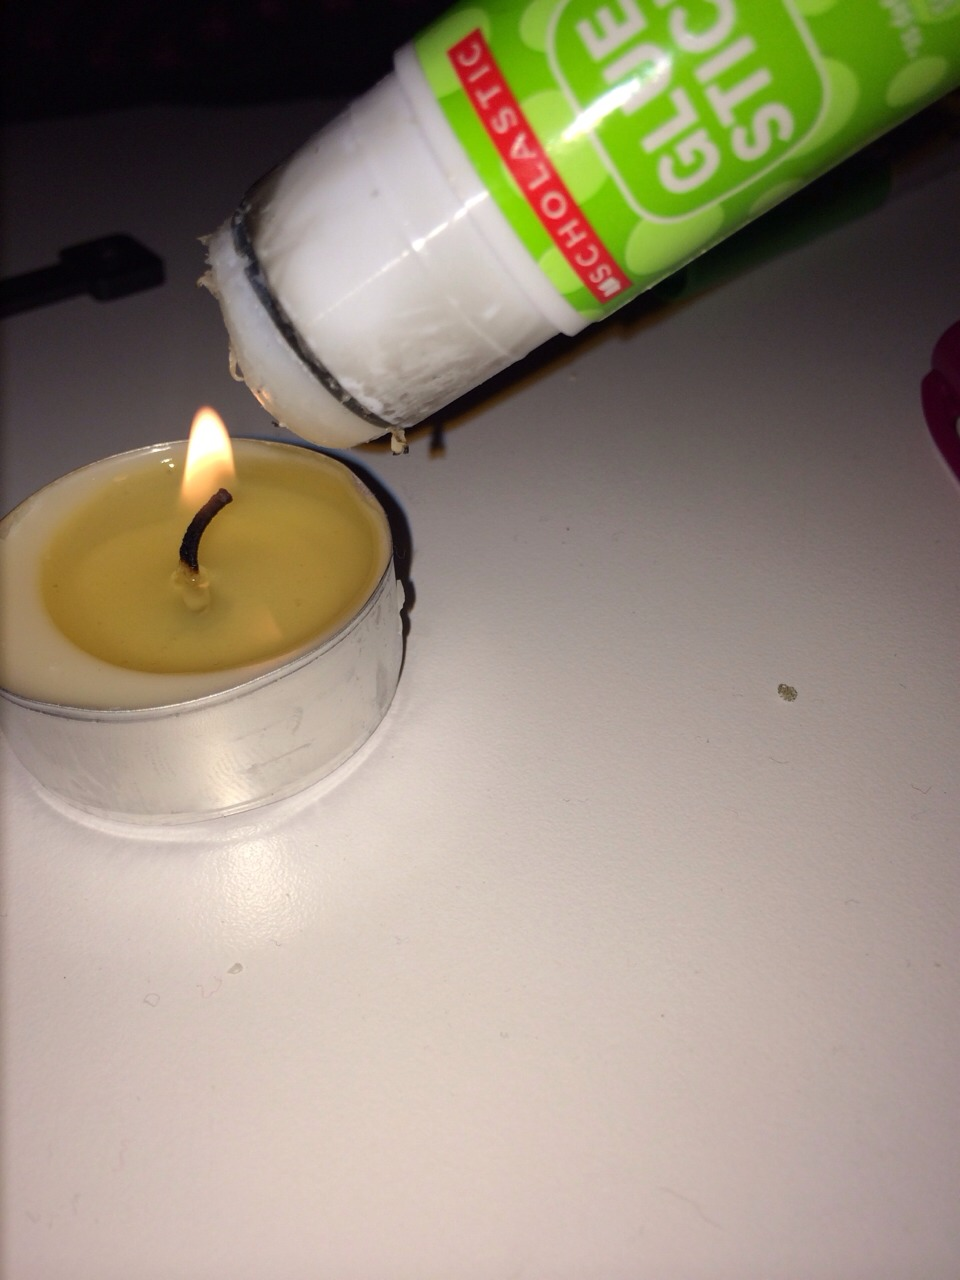 Place glue stick over a flame for 5-10 seconds.